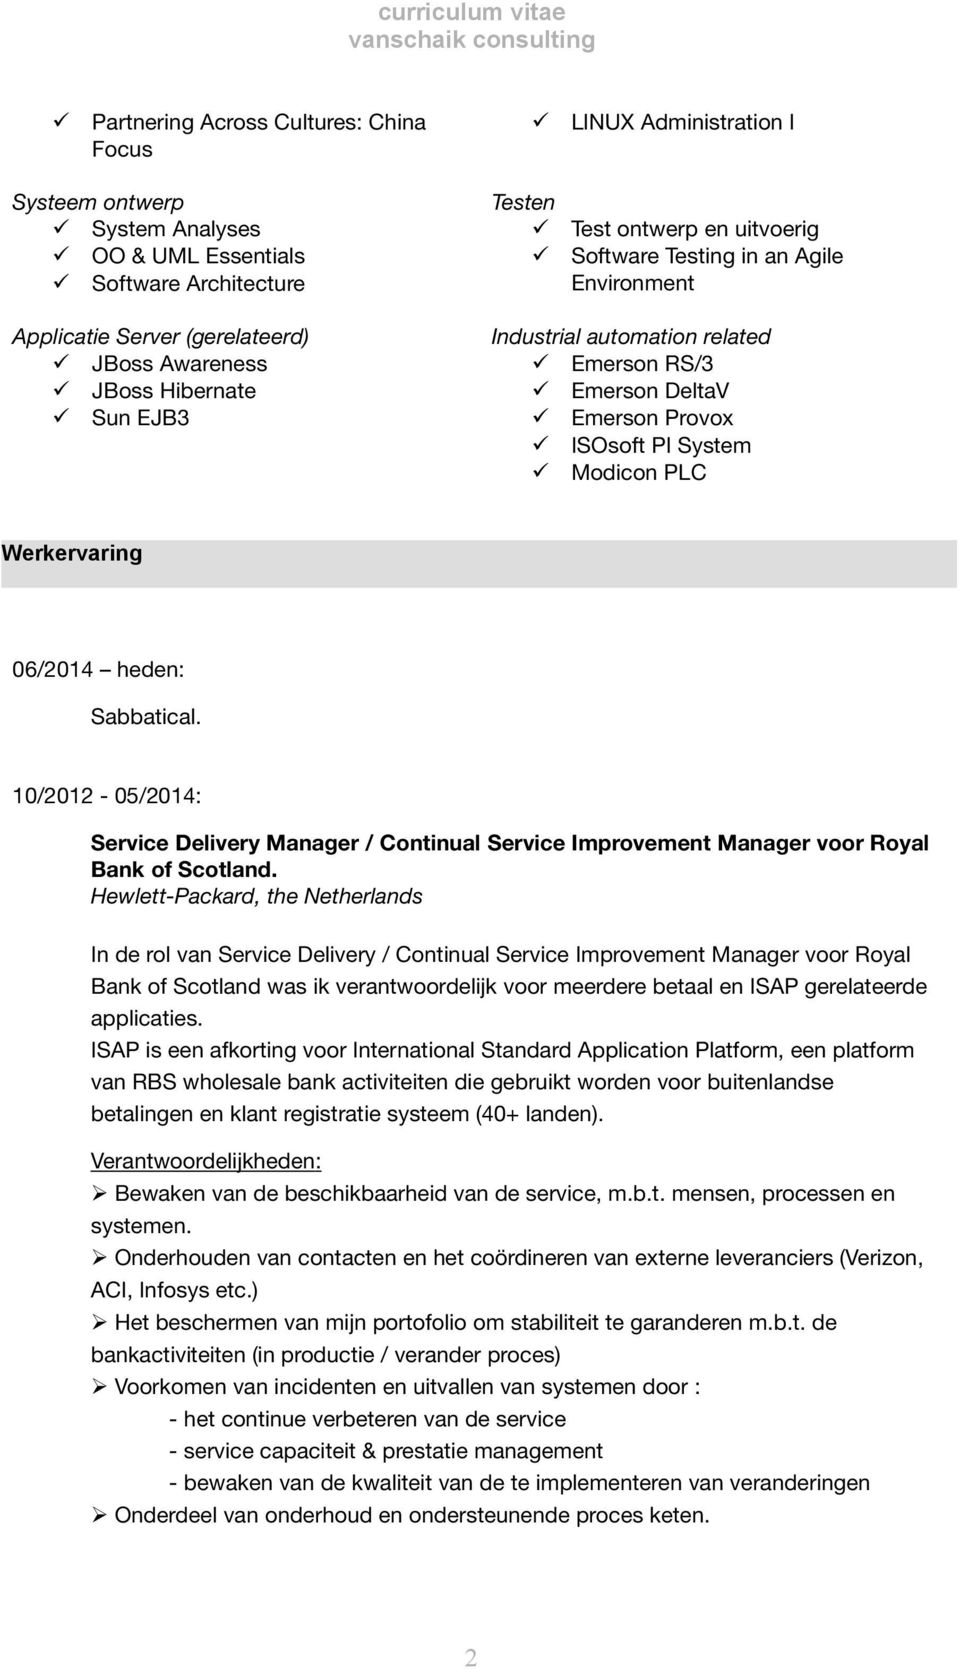 Werkervaring 06/2014 heden: Sabbatical. 10/2012-05/2014: Service Delivery Manager / Continual Service Improvement Manager voor Royal Bank of Scotland.